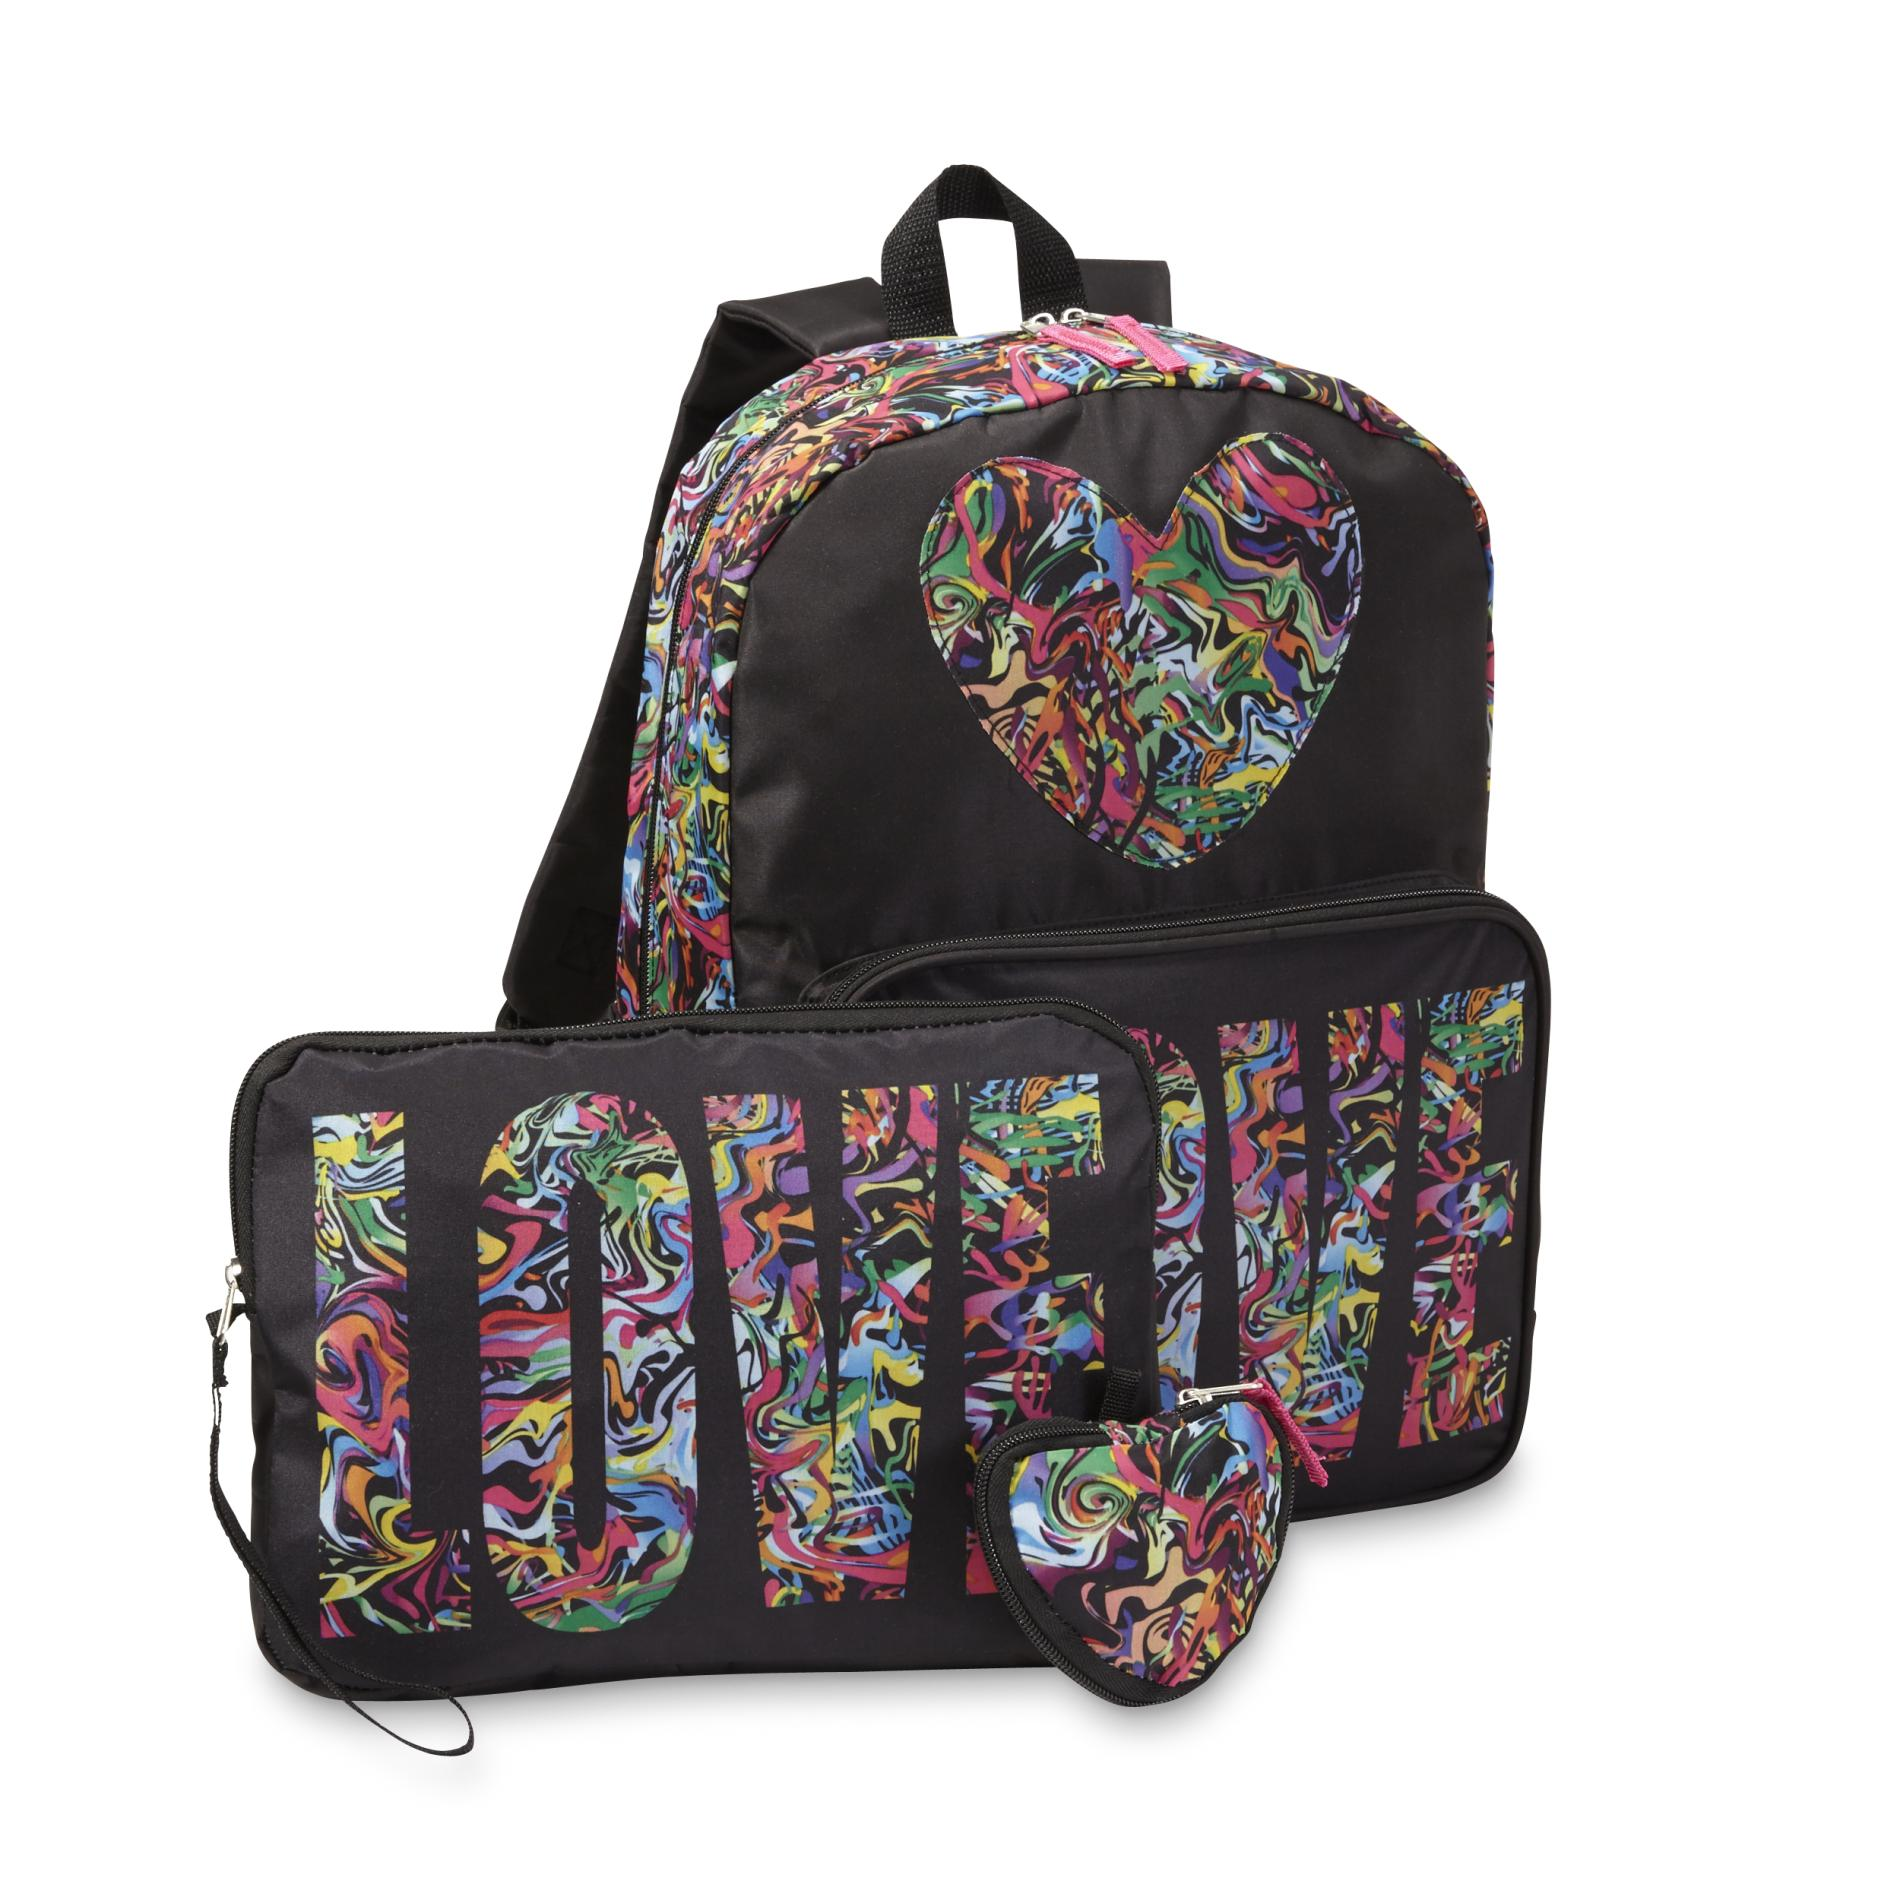 Confetti Girls Backpack Tablet Case Amp Pouch Love